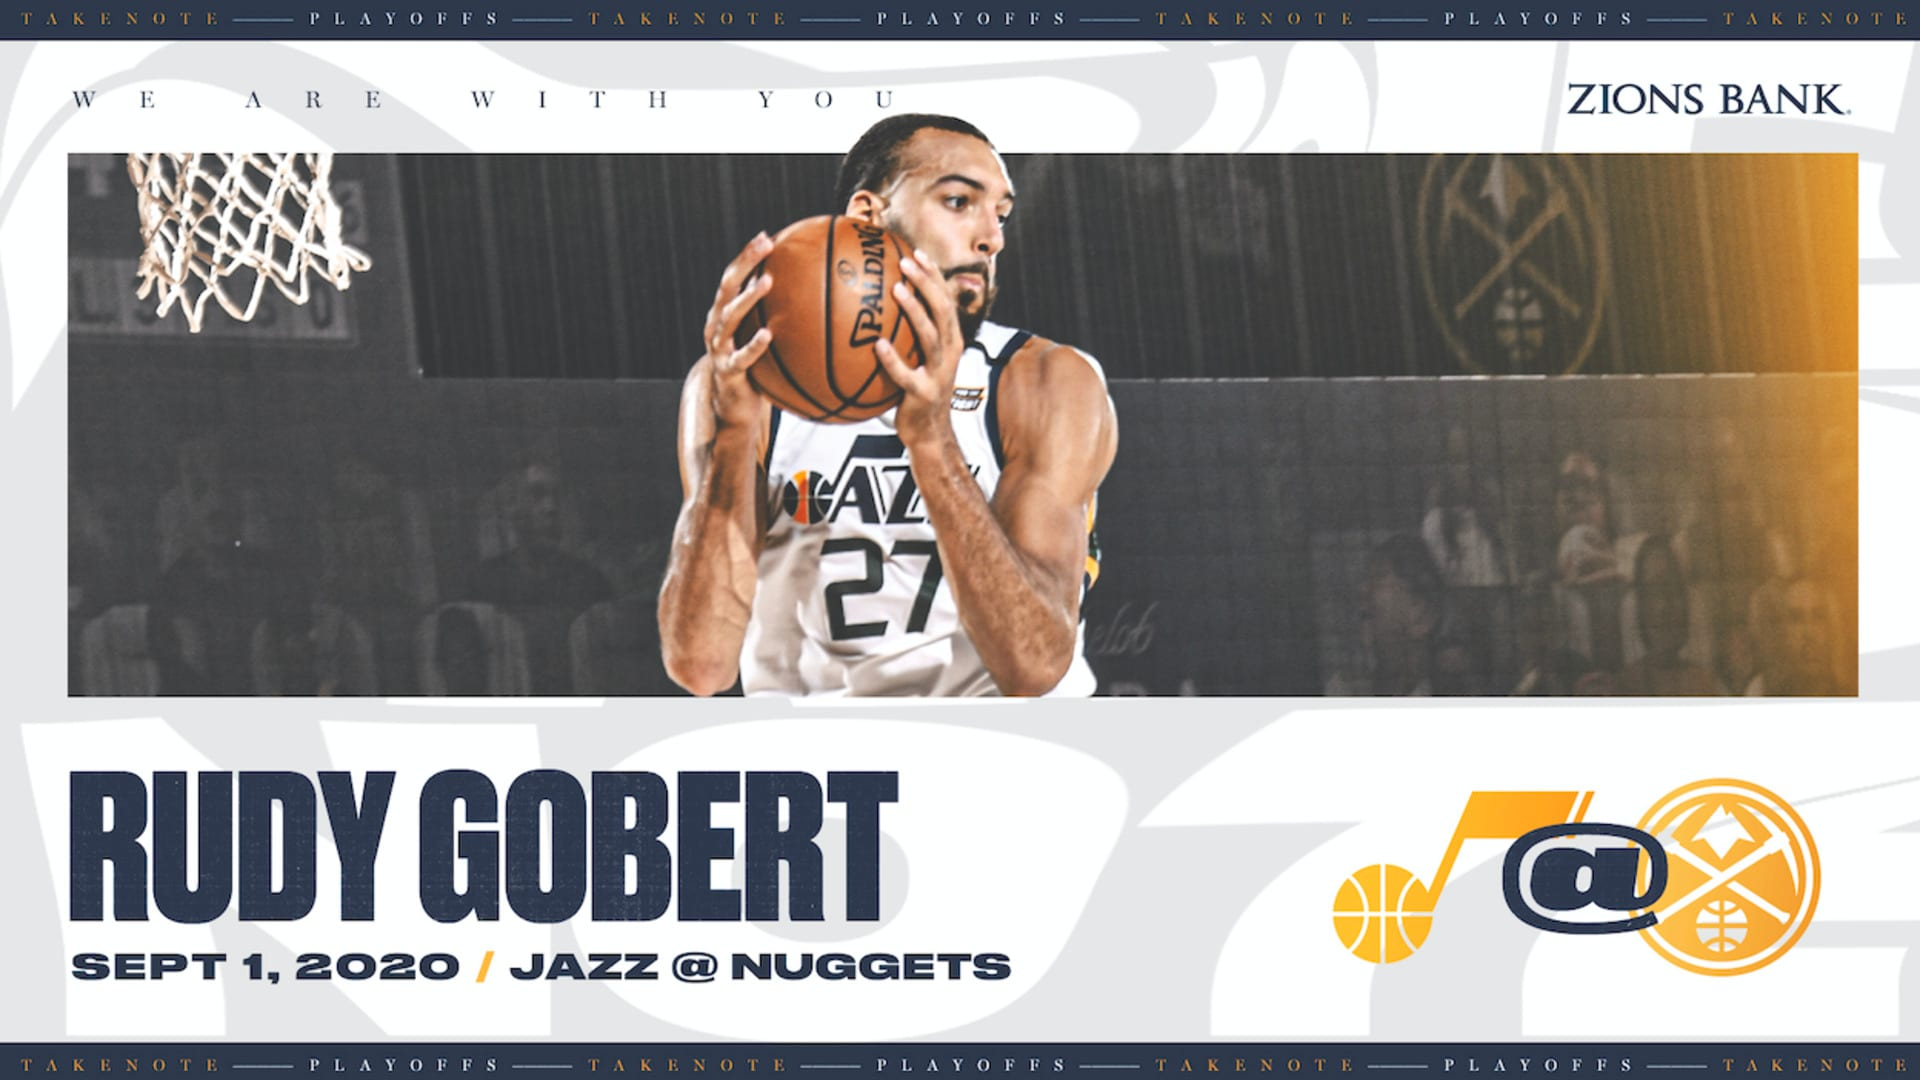 Highlights: Rudy Gobert — 19 points, 18 rebounds